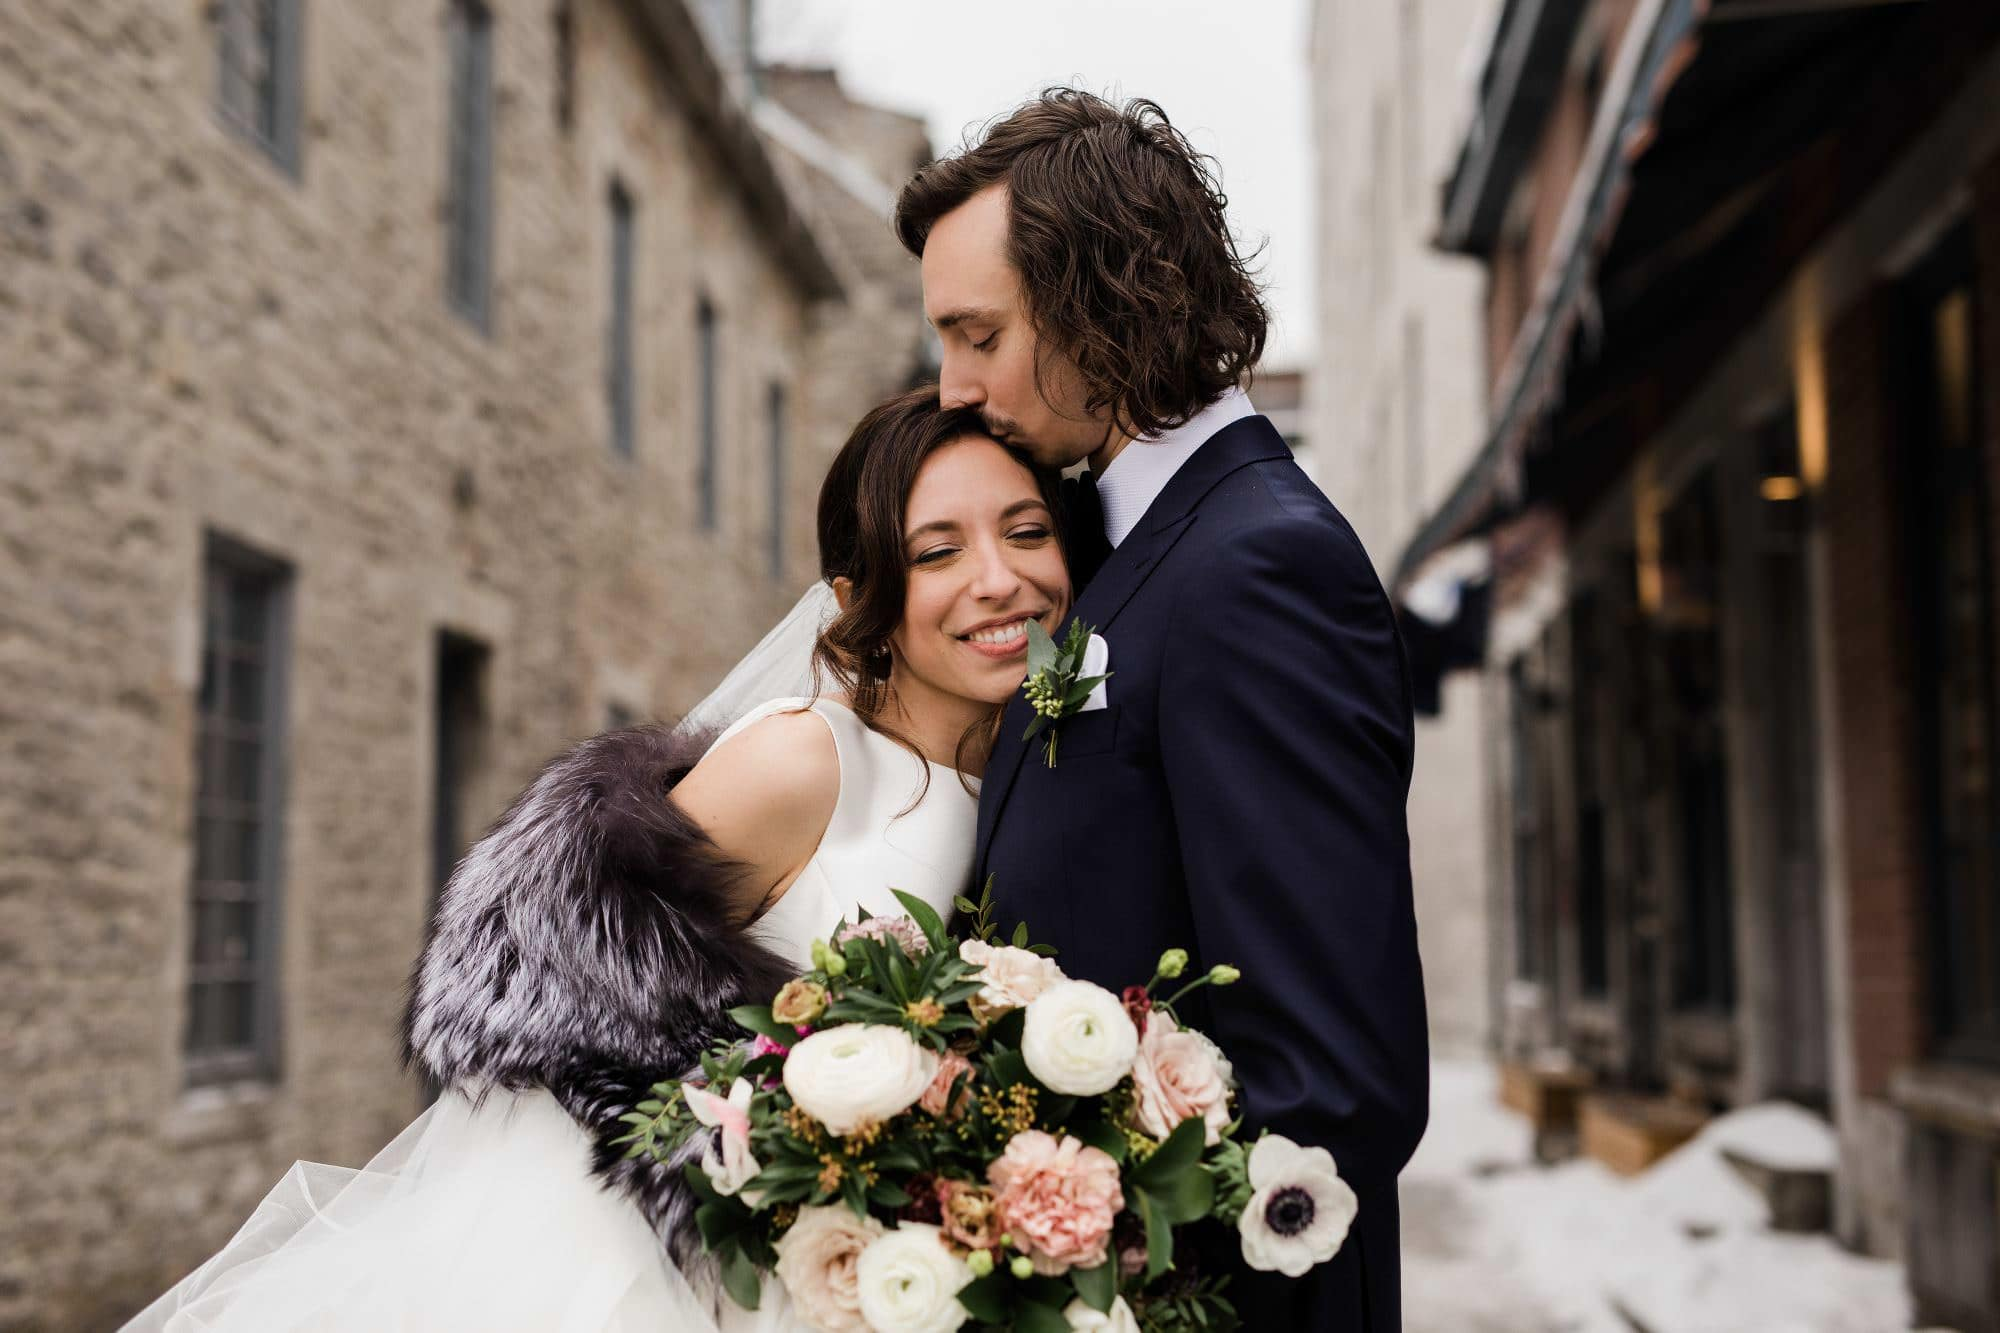 A bride and groom embrace outside of the william grey hotel